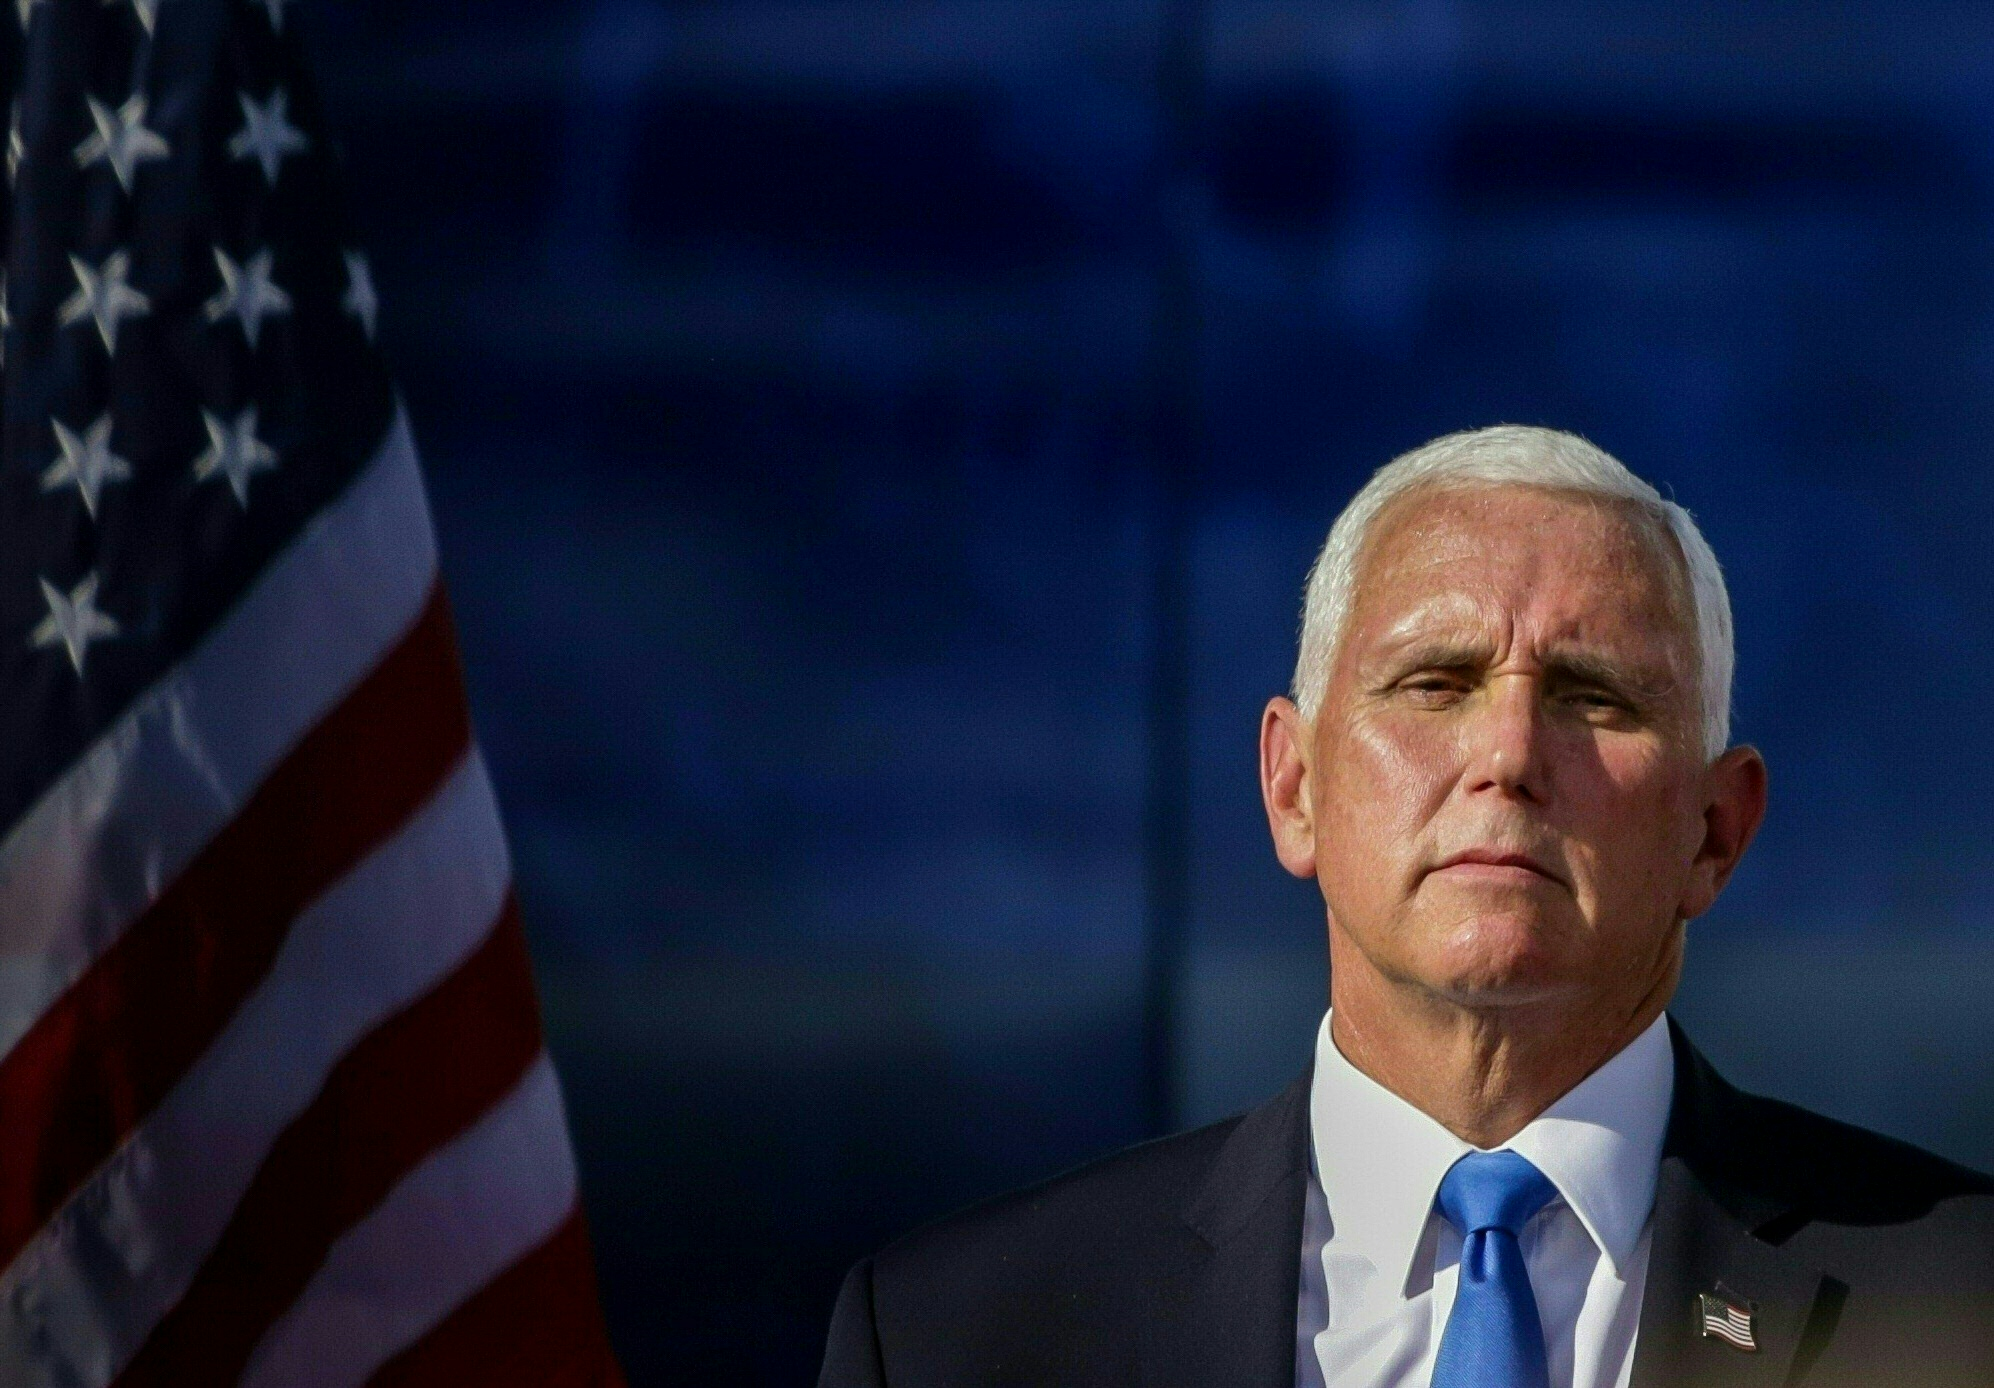 Pence Is Soundless Pushing Trump's Nice Lie